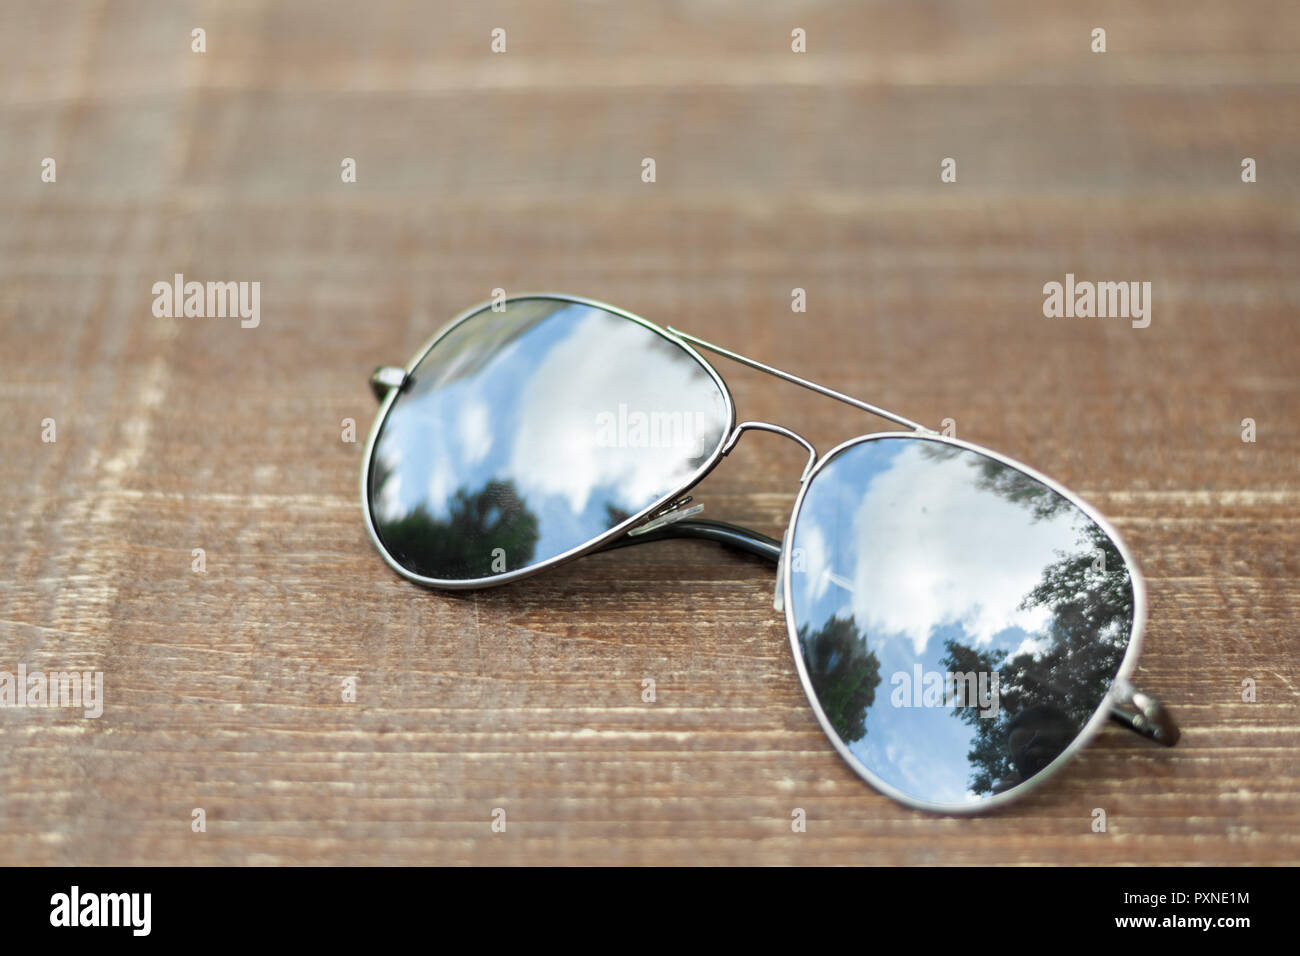 Classic avionics sunglasses on brown wooden surface - Stock Image